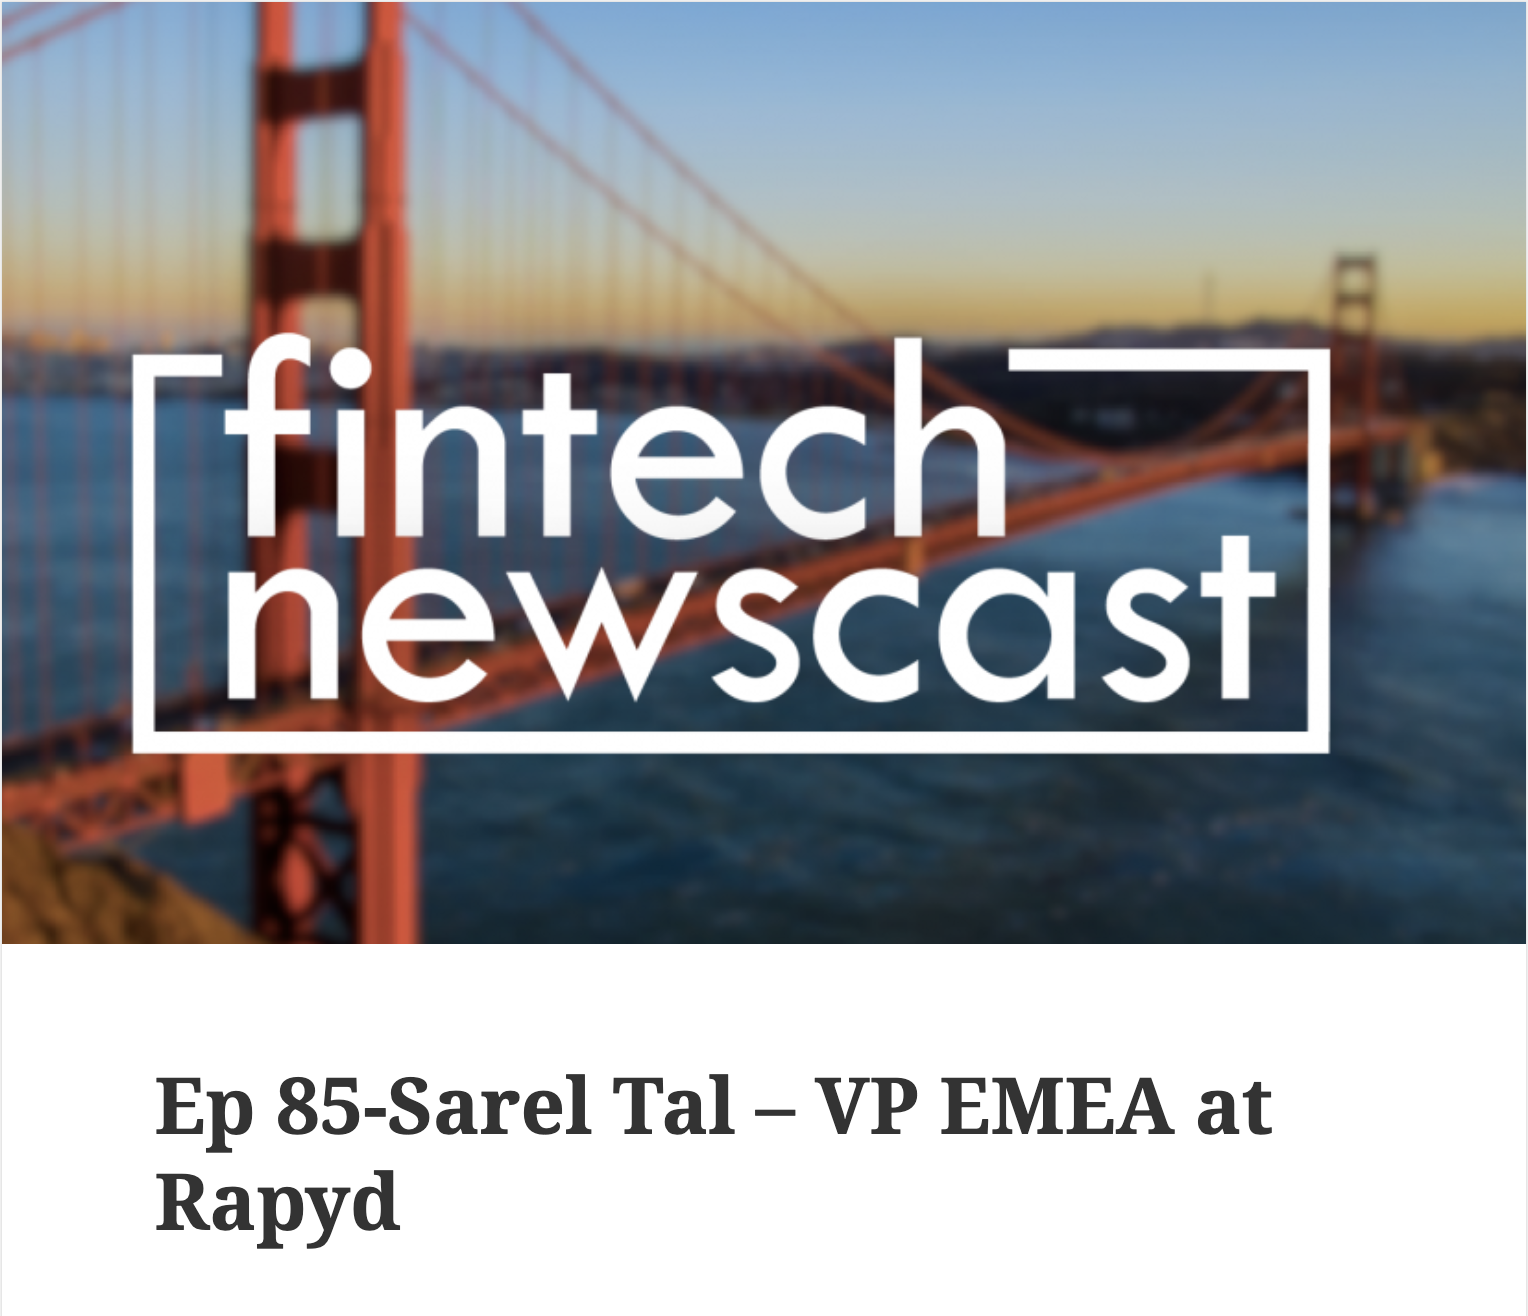 Sarel Tal Interviewed On Fintech Newscast